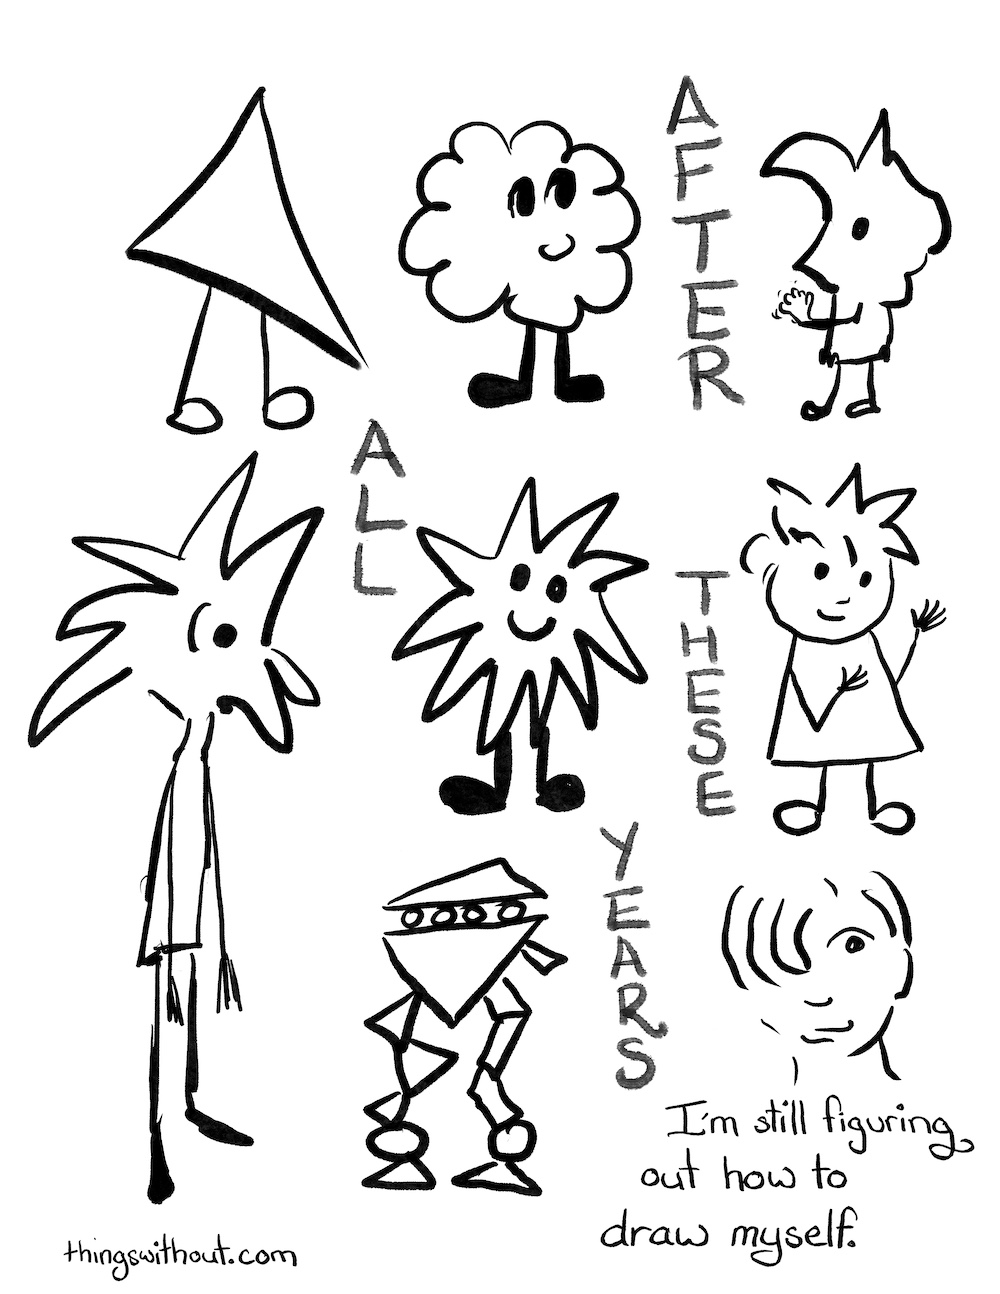 Webcomic. A variety of different looking characters, ranging from a triangle with legs and no facial features, to humanoid characters with spiky hair and a character that looks a bit like a robot biped with a series of shapes stacked precariously on top of each other. Caption: After all these years, I'm still learning how to draw myself